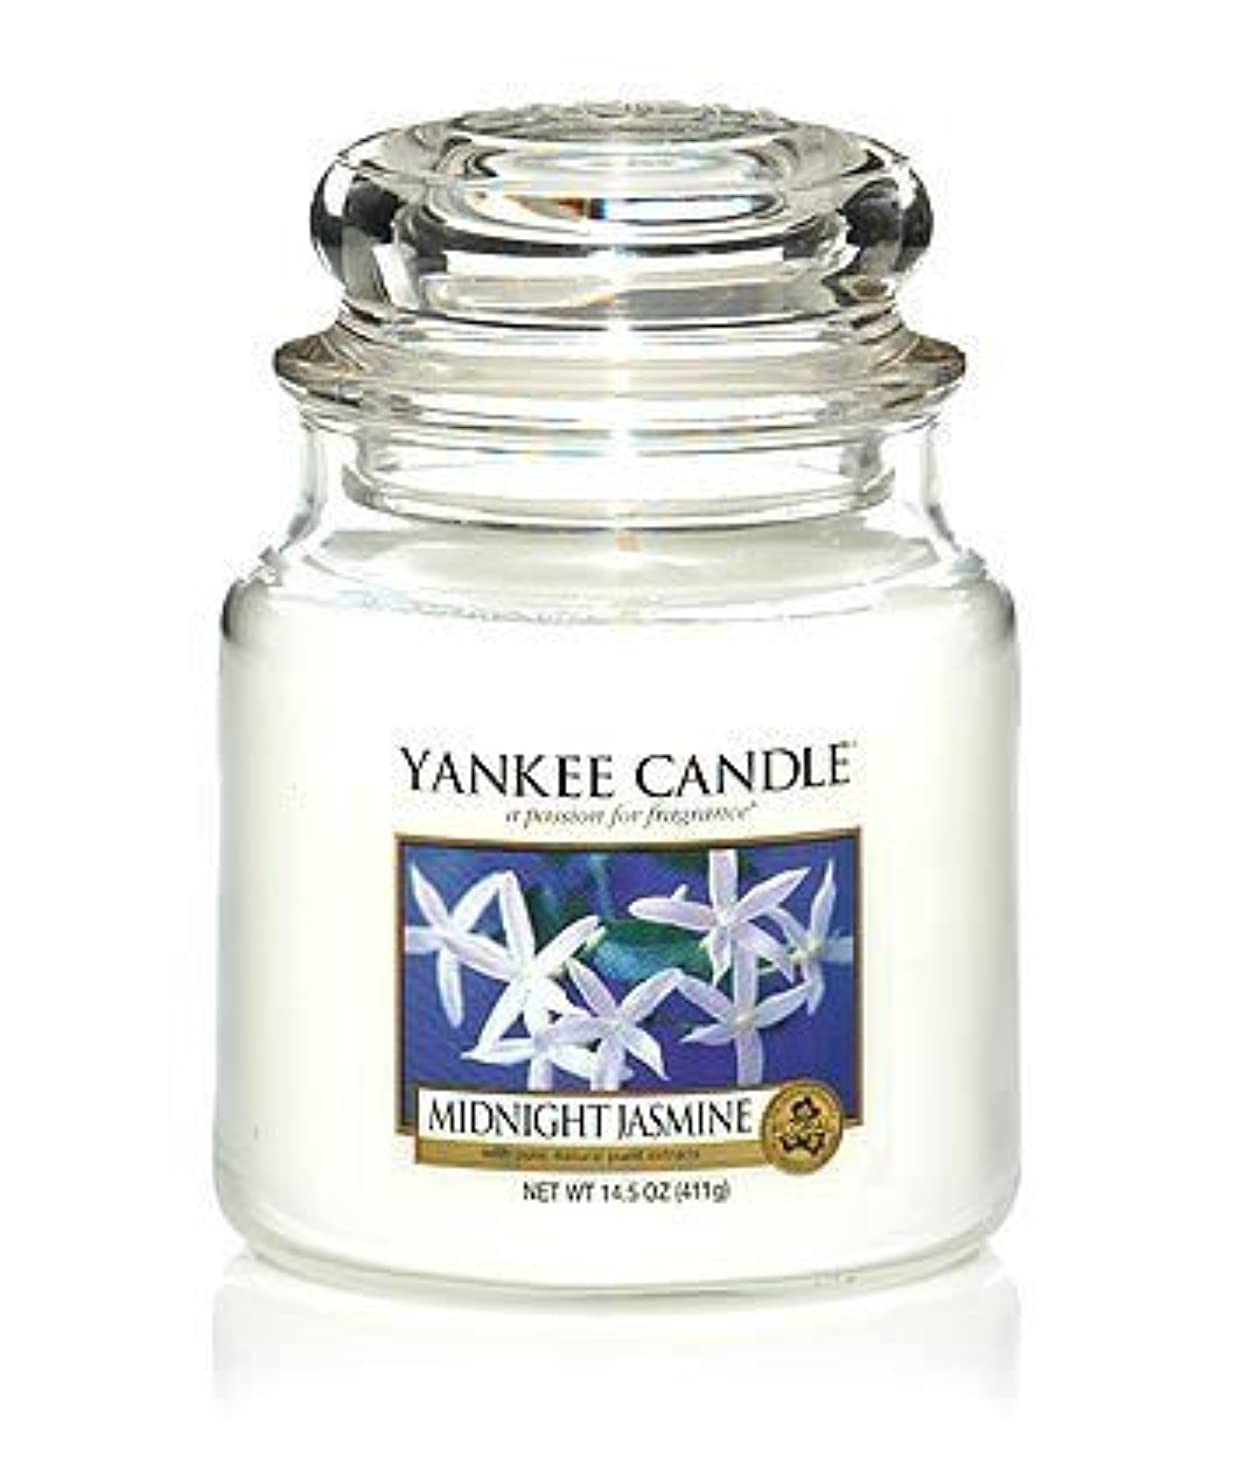 司教ストラップ祖父母を訪問Yankee Candle Midnight Jasmine Medium Jar Candle, Floral Scent by Yankee Candle [並行輸入品]